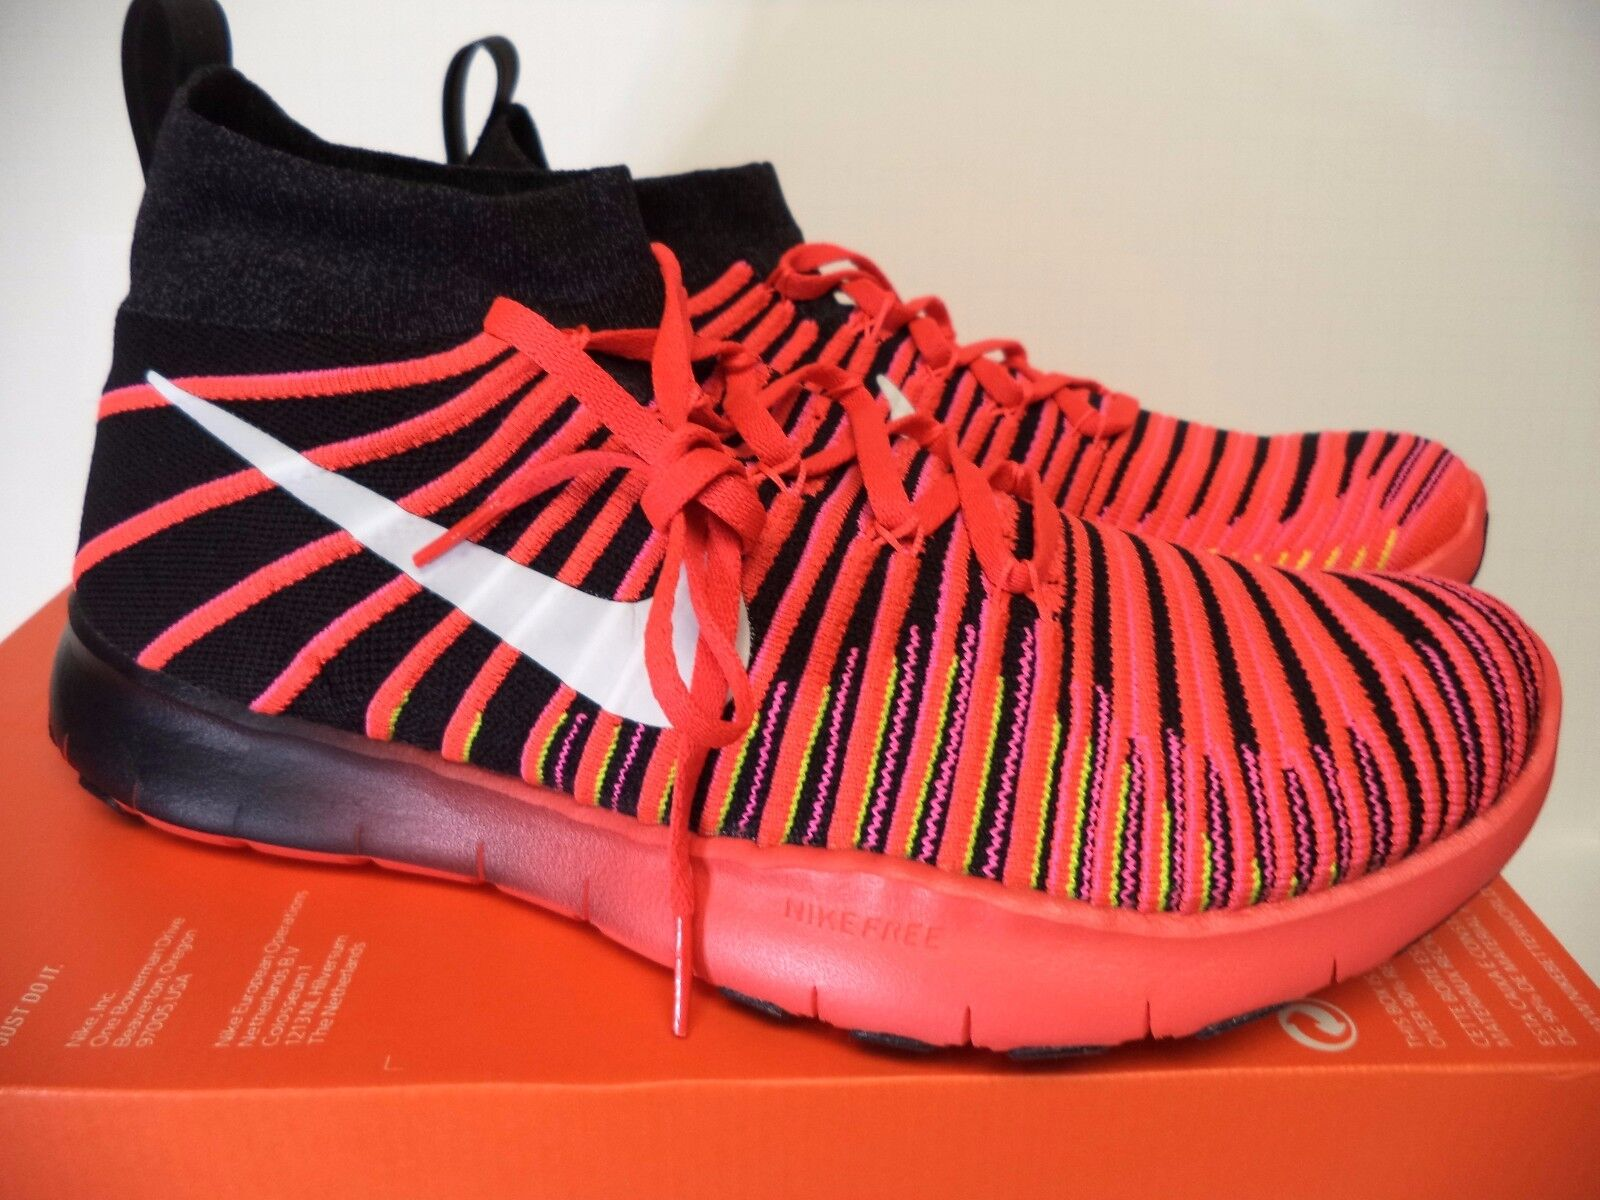 Nike men FREE TRAIN FORCE FLYKNIT athletic 833275 sneakers 11.5 (11) crimson 833275 athletic 001 87cac7